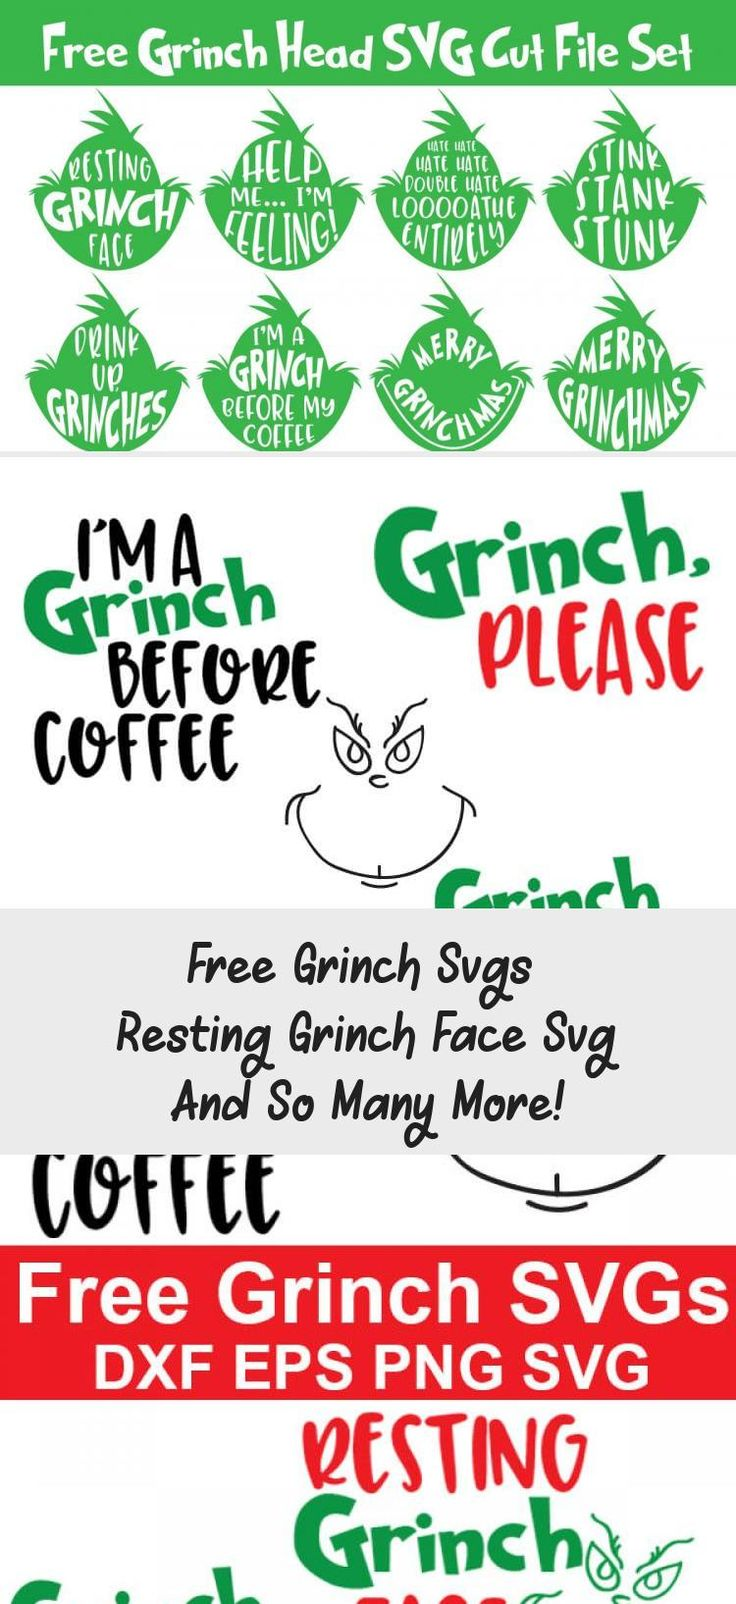 Free Grinch Svgs Resting Grinch Face Svg And So Many